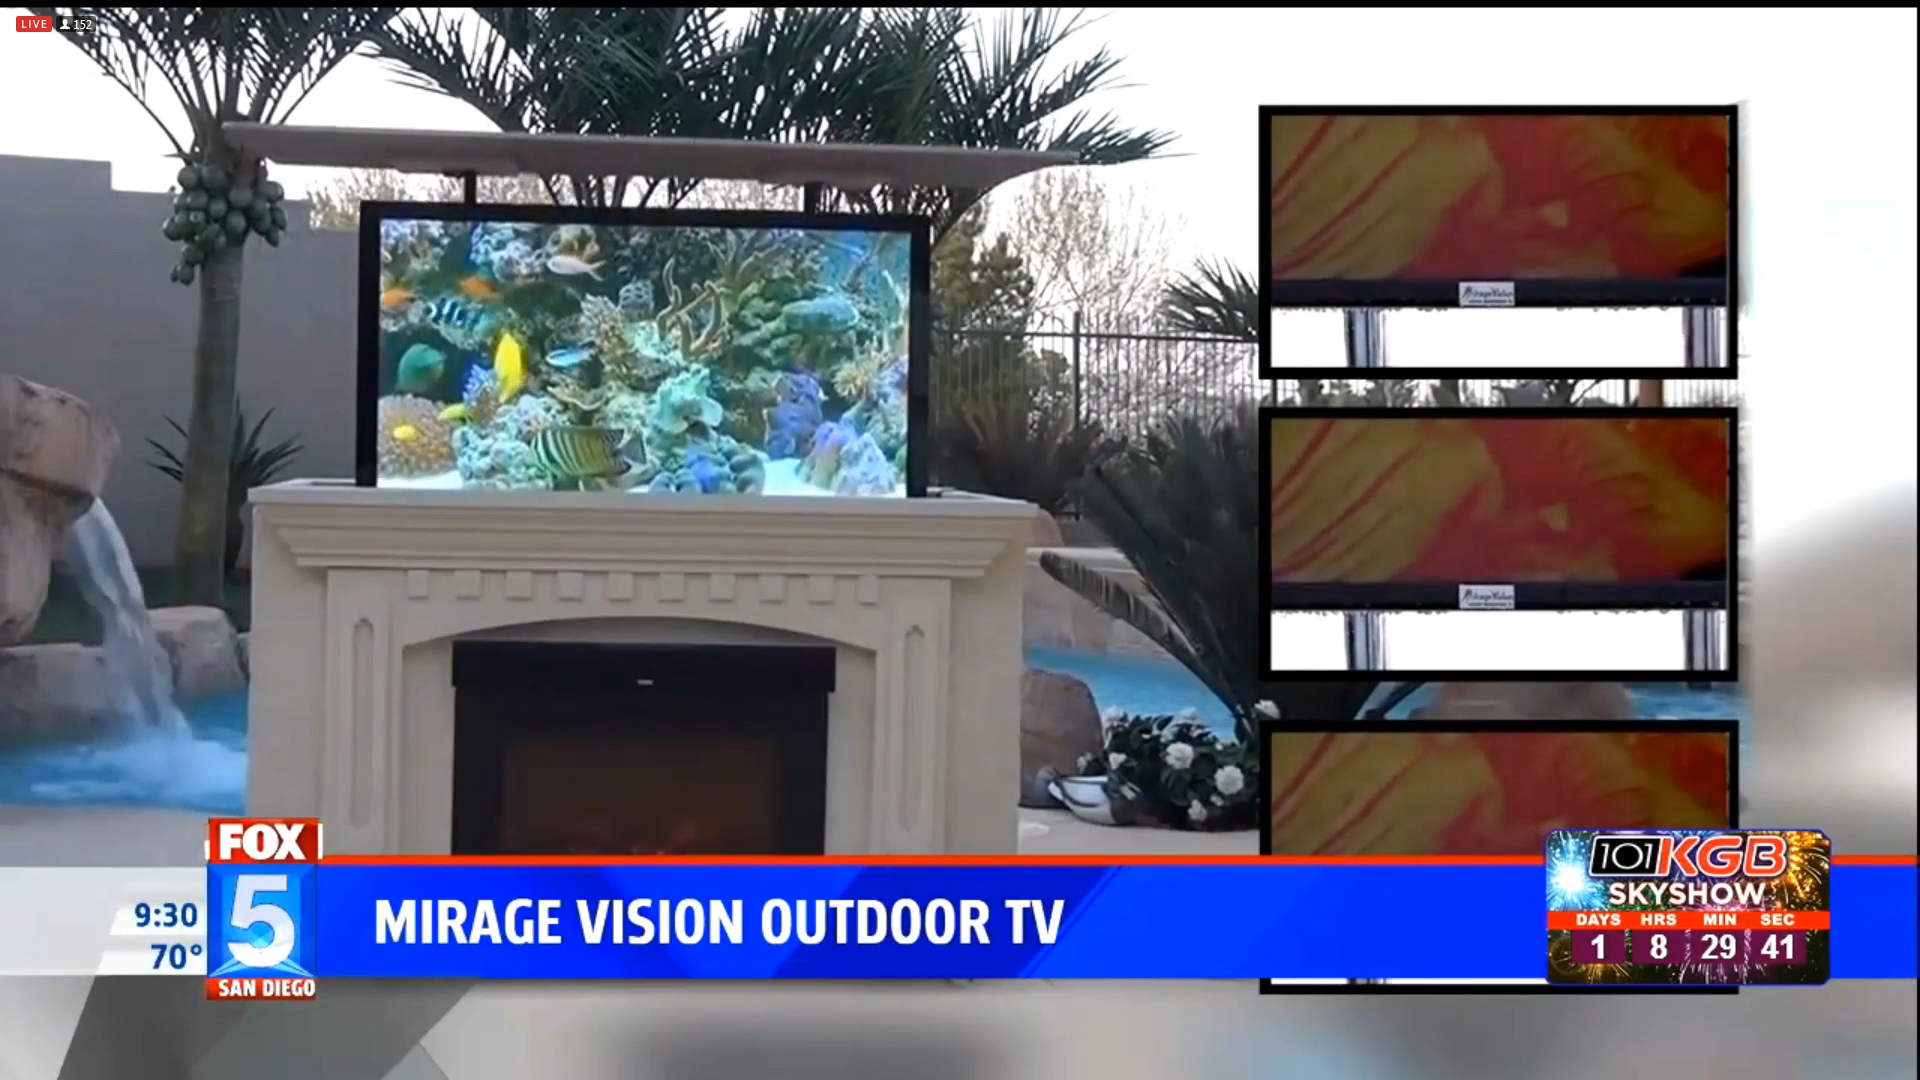 MIRAGE VISION OUTDOOR TV - Starting at $950.00Shop Now